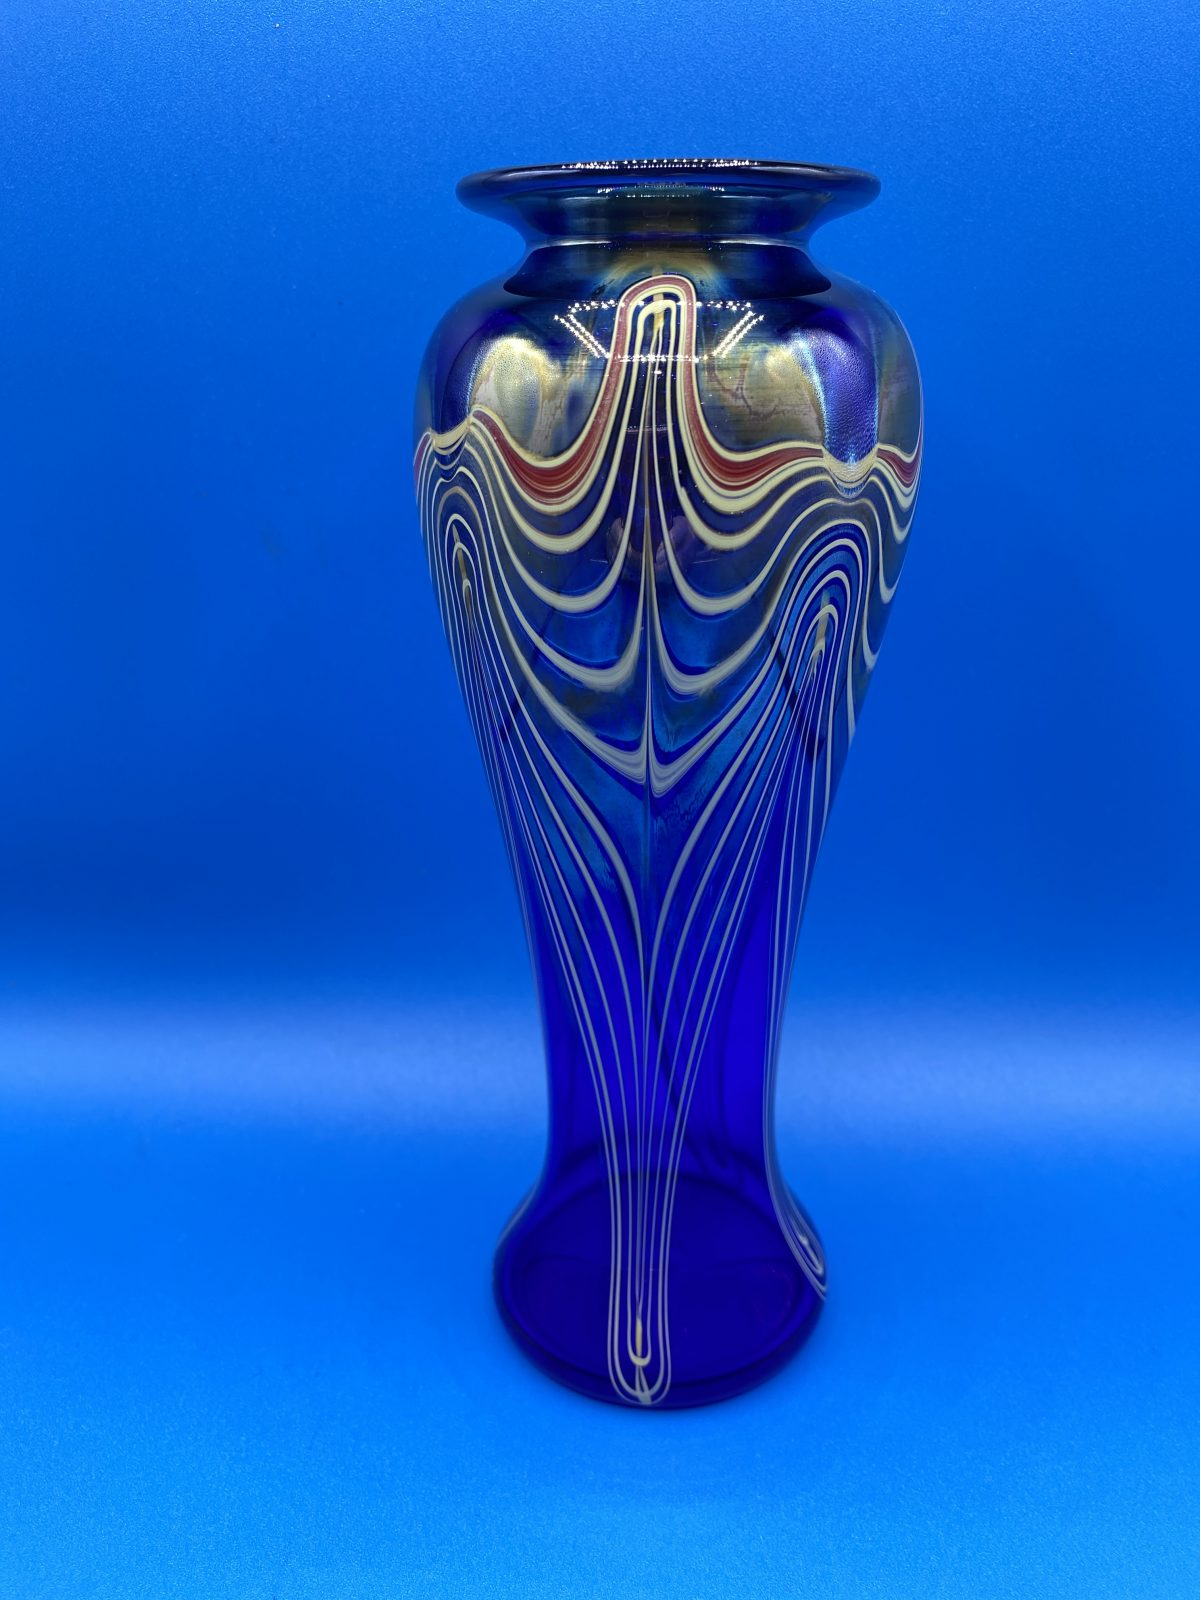 G1 - A hand-blown cobalt blue iridescent studio art glass vase by Marc Buotte, etched with his signature and dated 1998.  £175